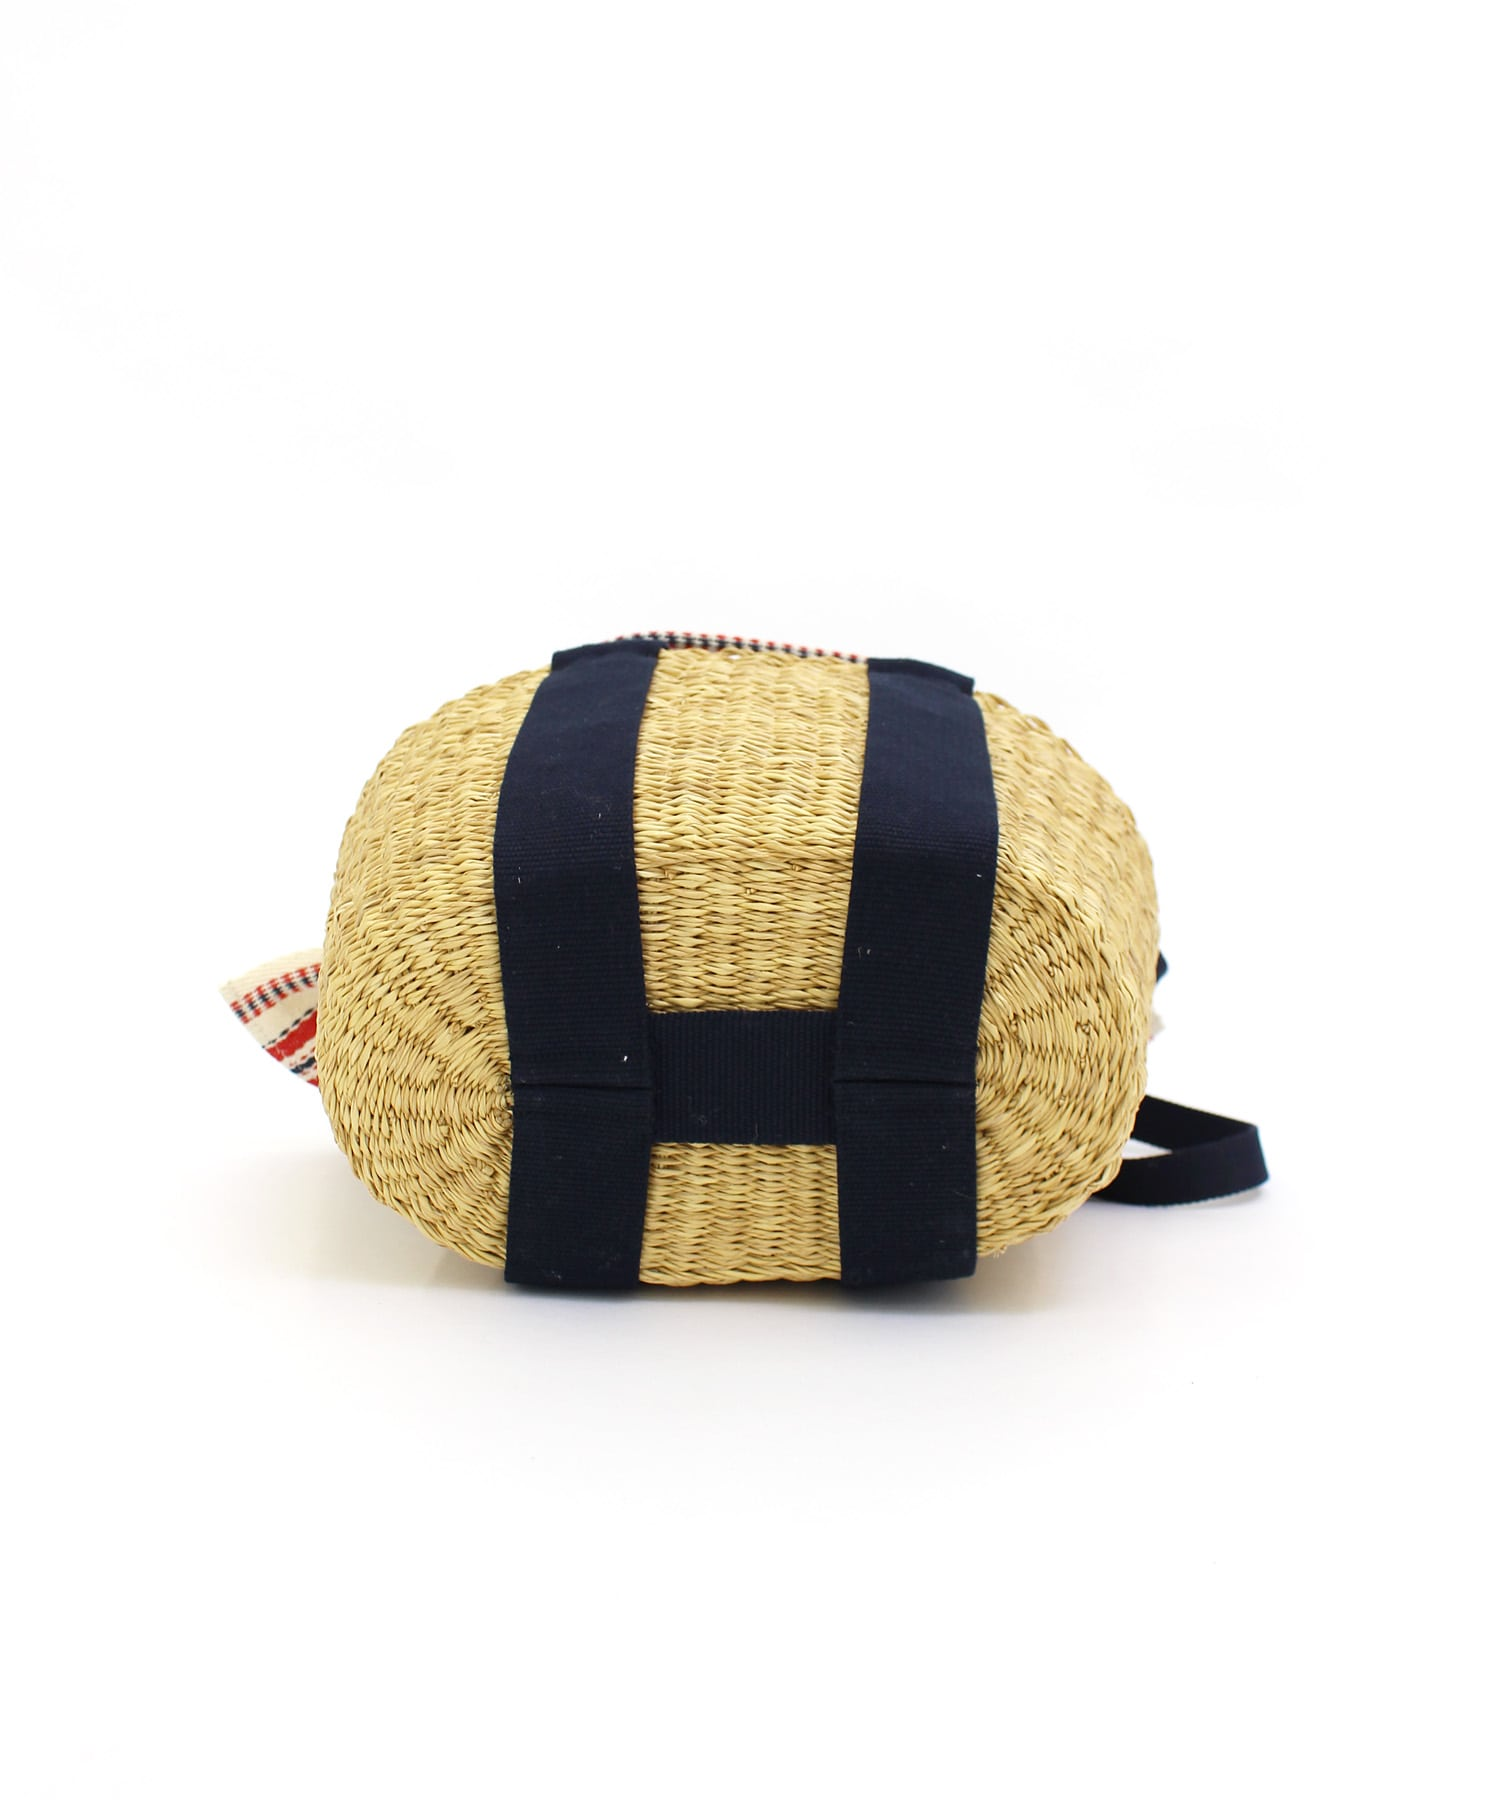 <MUUN>mini caba p hdl folk bag